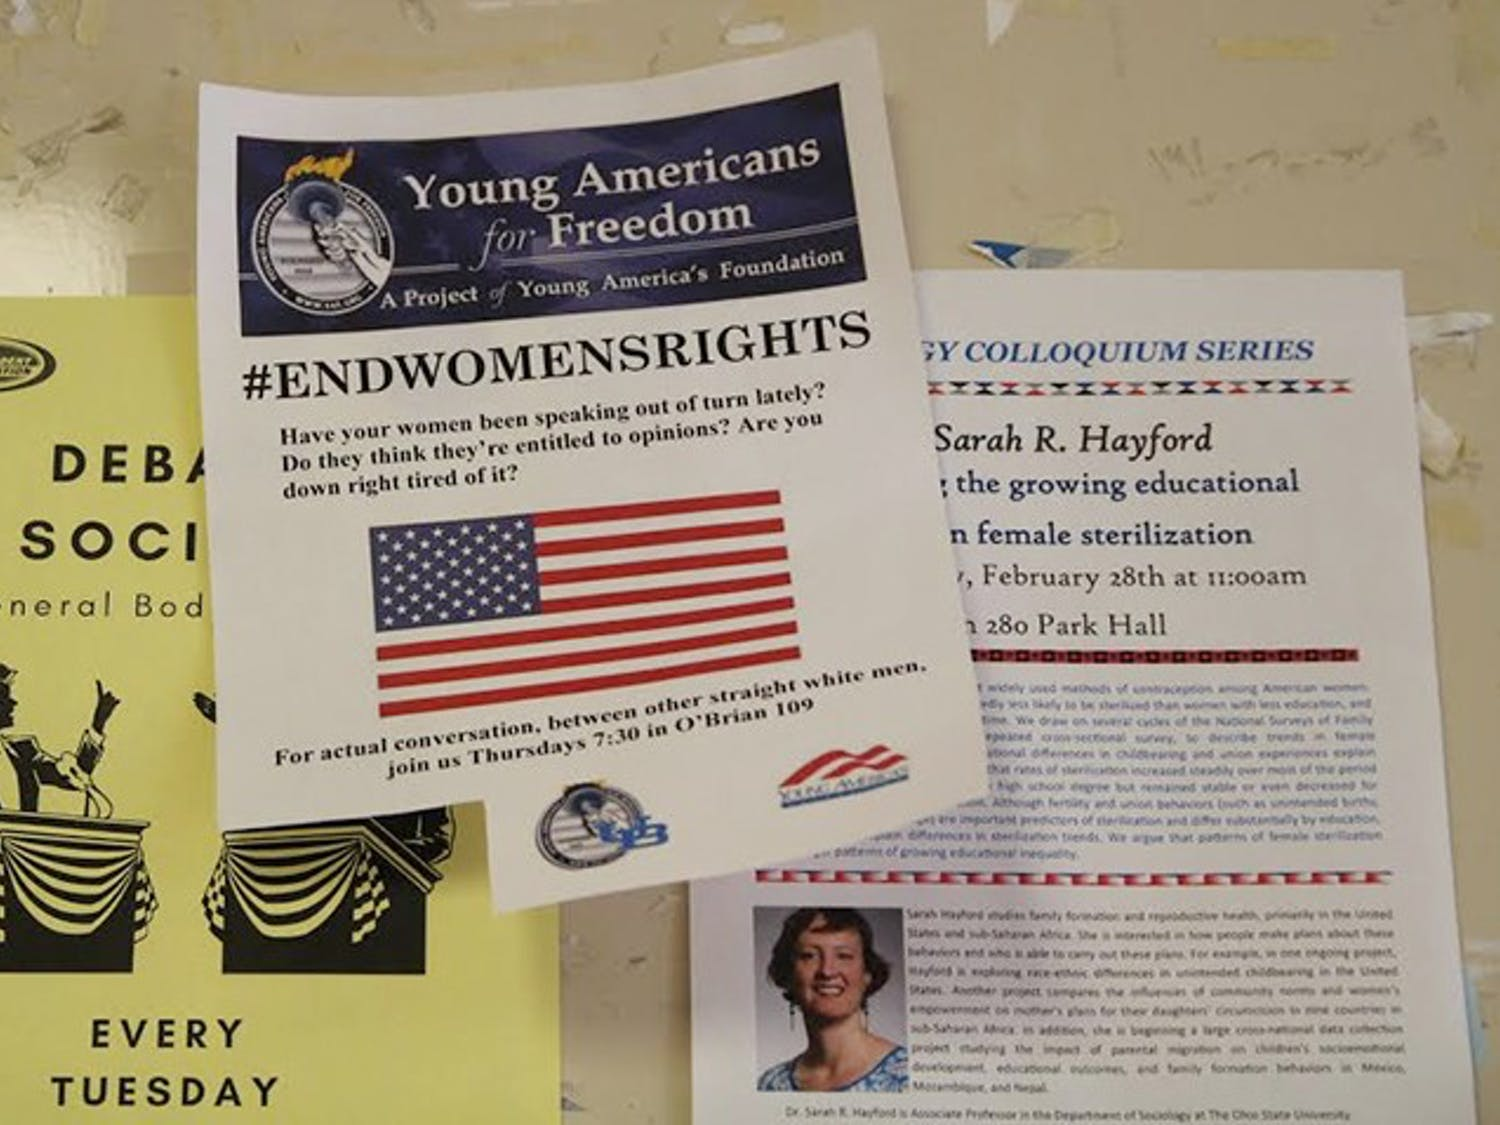 """On Wednesday morning, """"#ENDWOMENSRIGHTS"""" flyers were posted on bulletin boards throughout halls like Norton, Knox and the Student Union. The fliers listed Young Americans for Freedom as its distributor but the club and UB deny members posted the messages."""